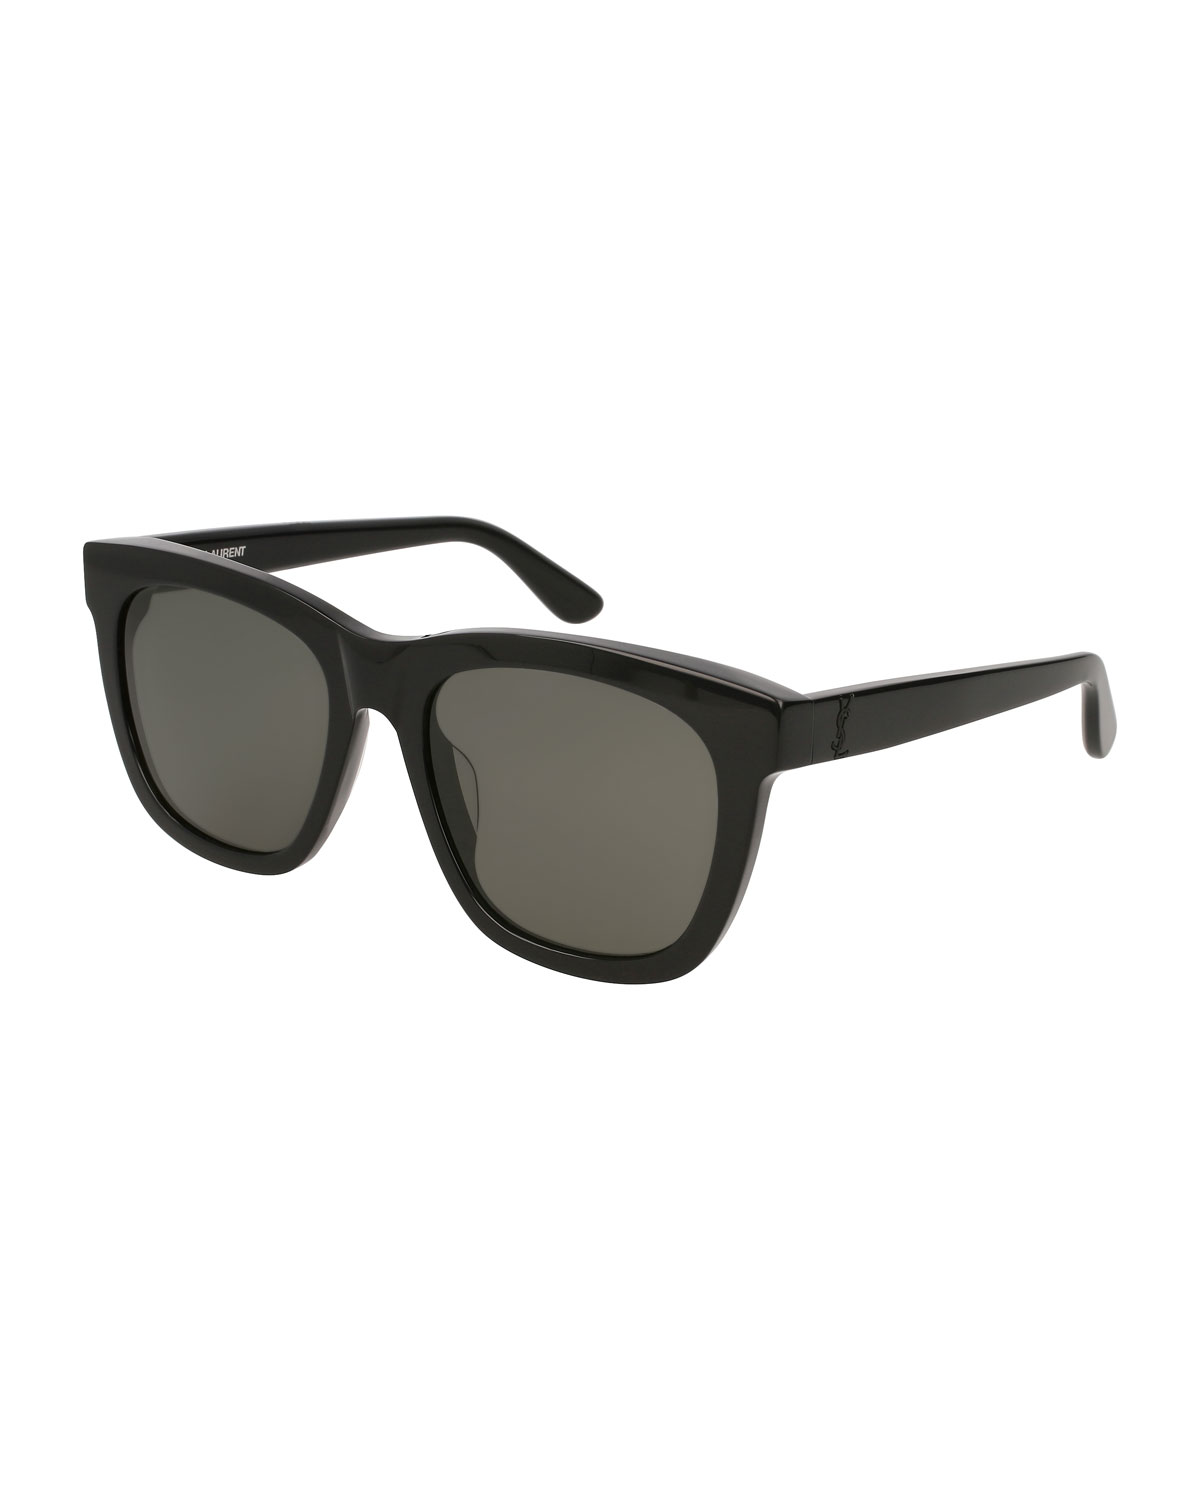 6209b53296 Saint Laurent Women s Sunglasses